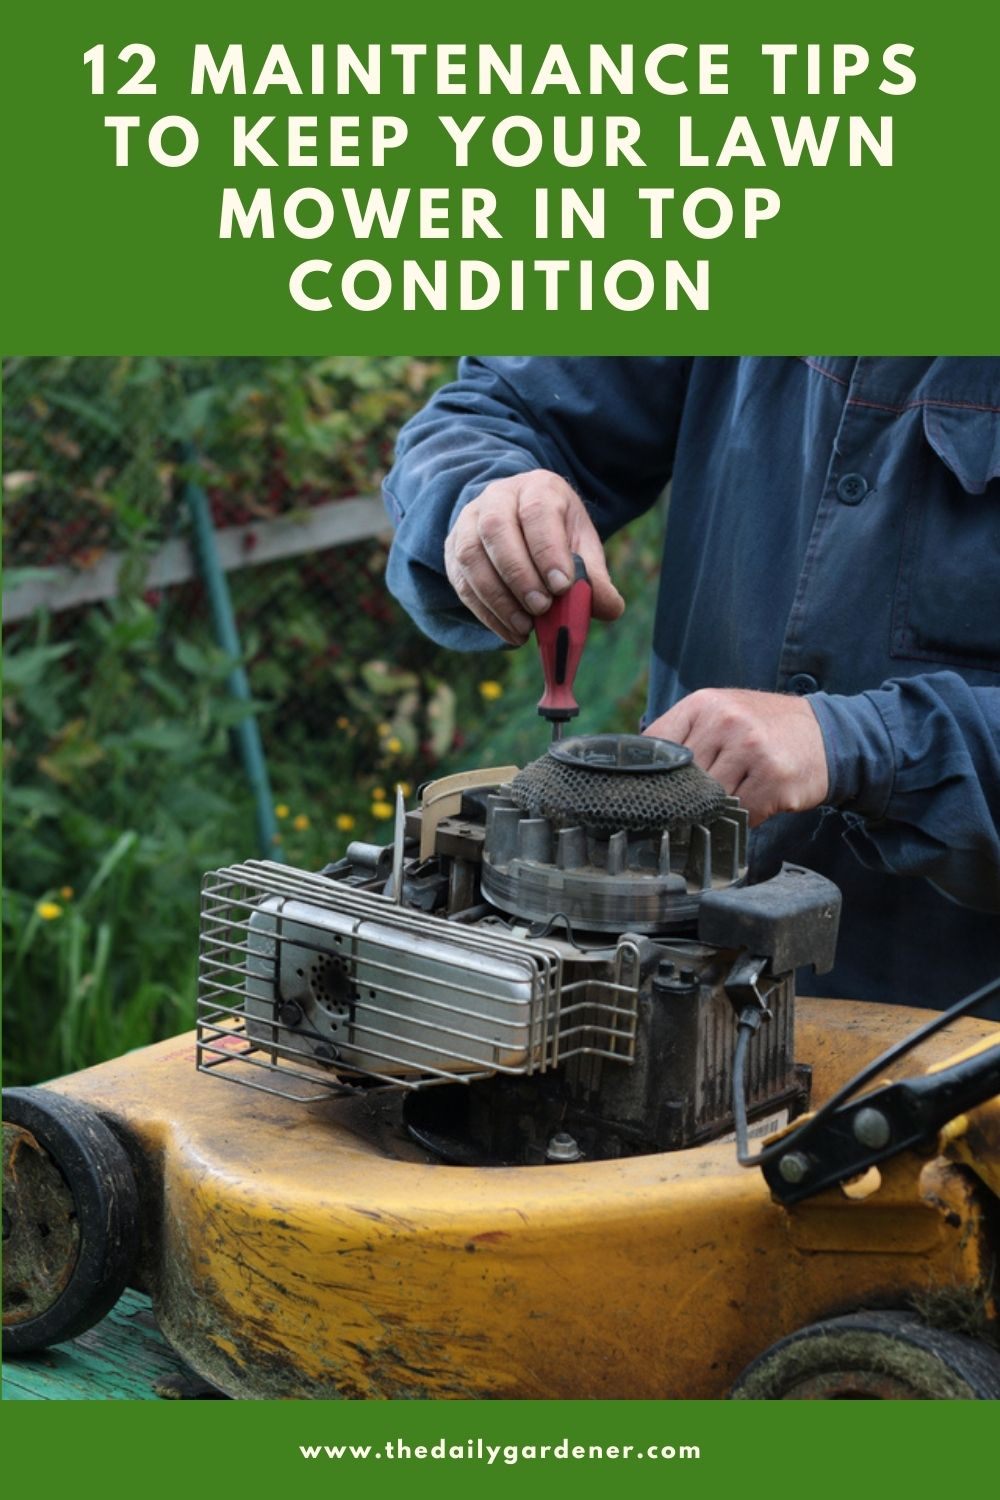 12 Maintenance Tips to keep Your Lawn Mower in Top Condition 2